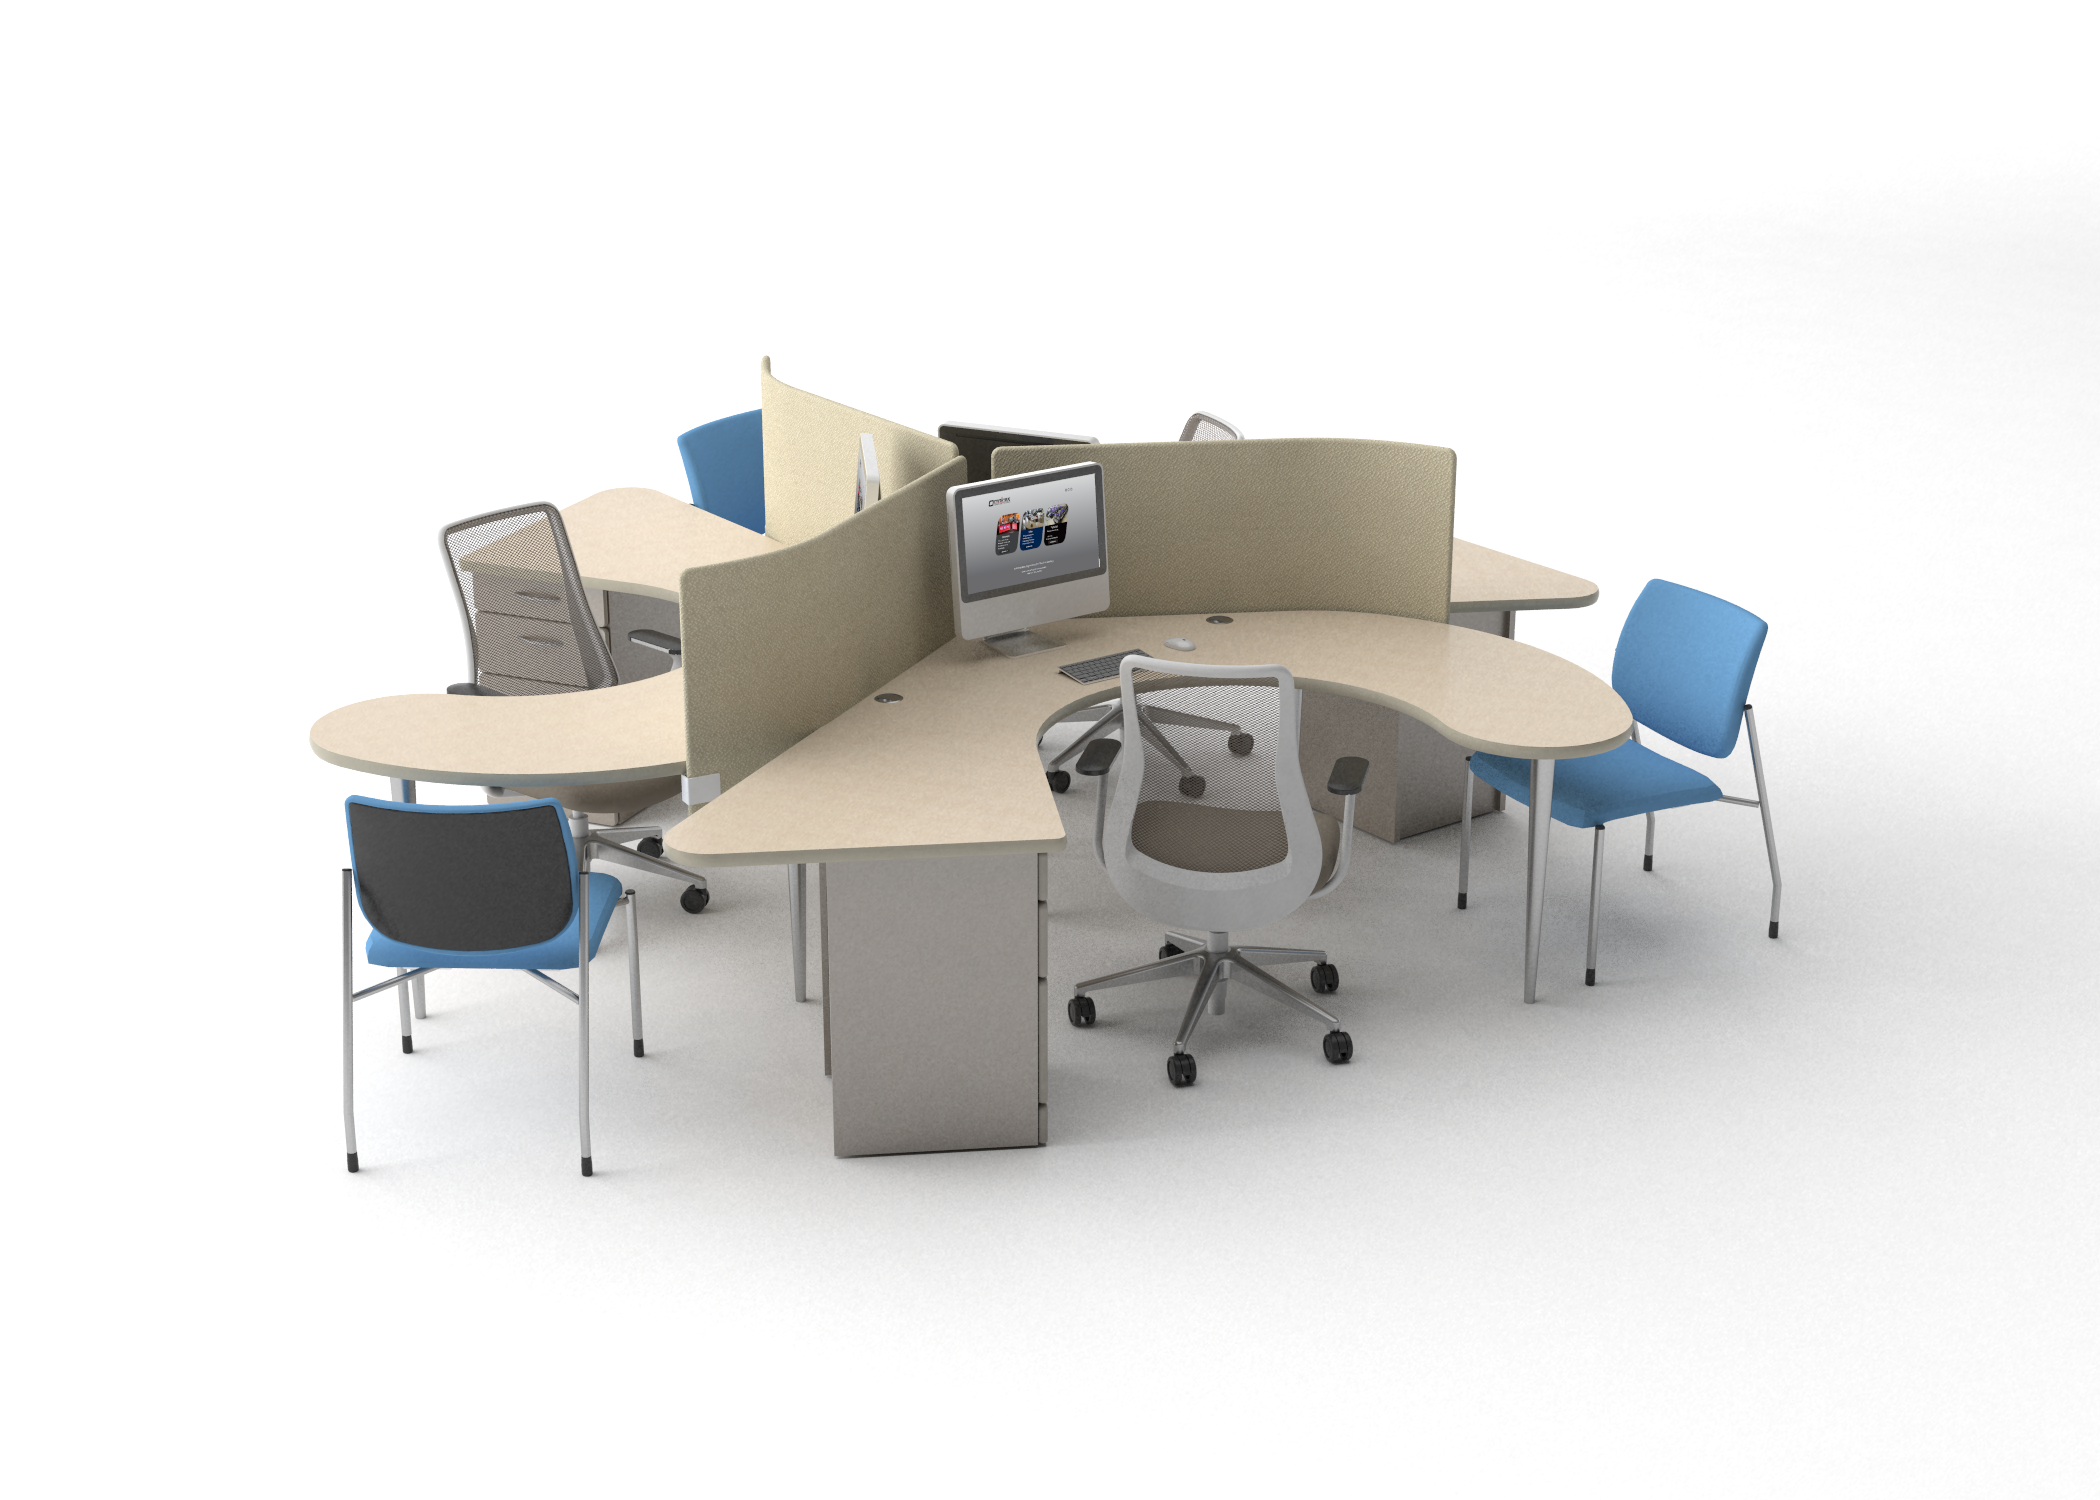 Open Floor Plan Office Furniture: Why Create An Open Office Floor PlanOmnirax